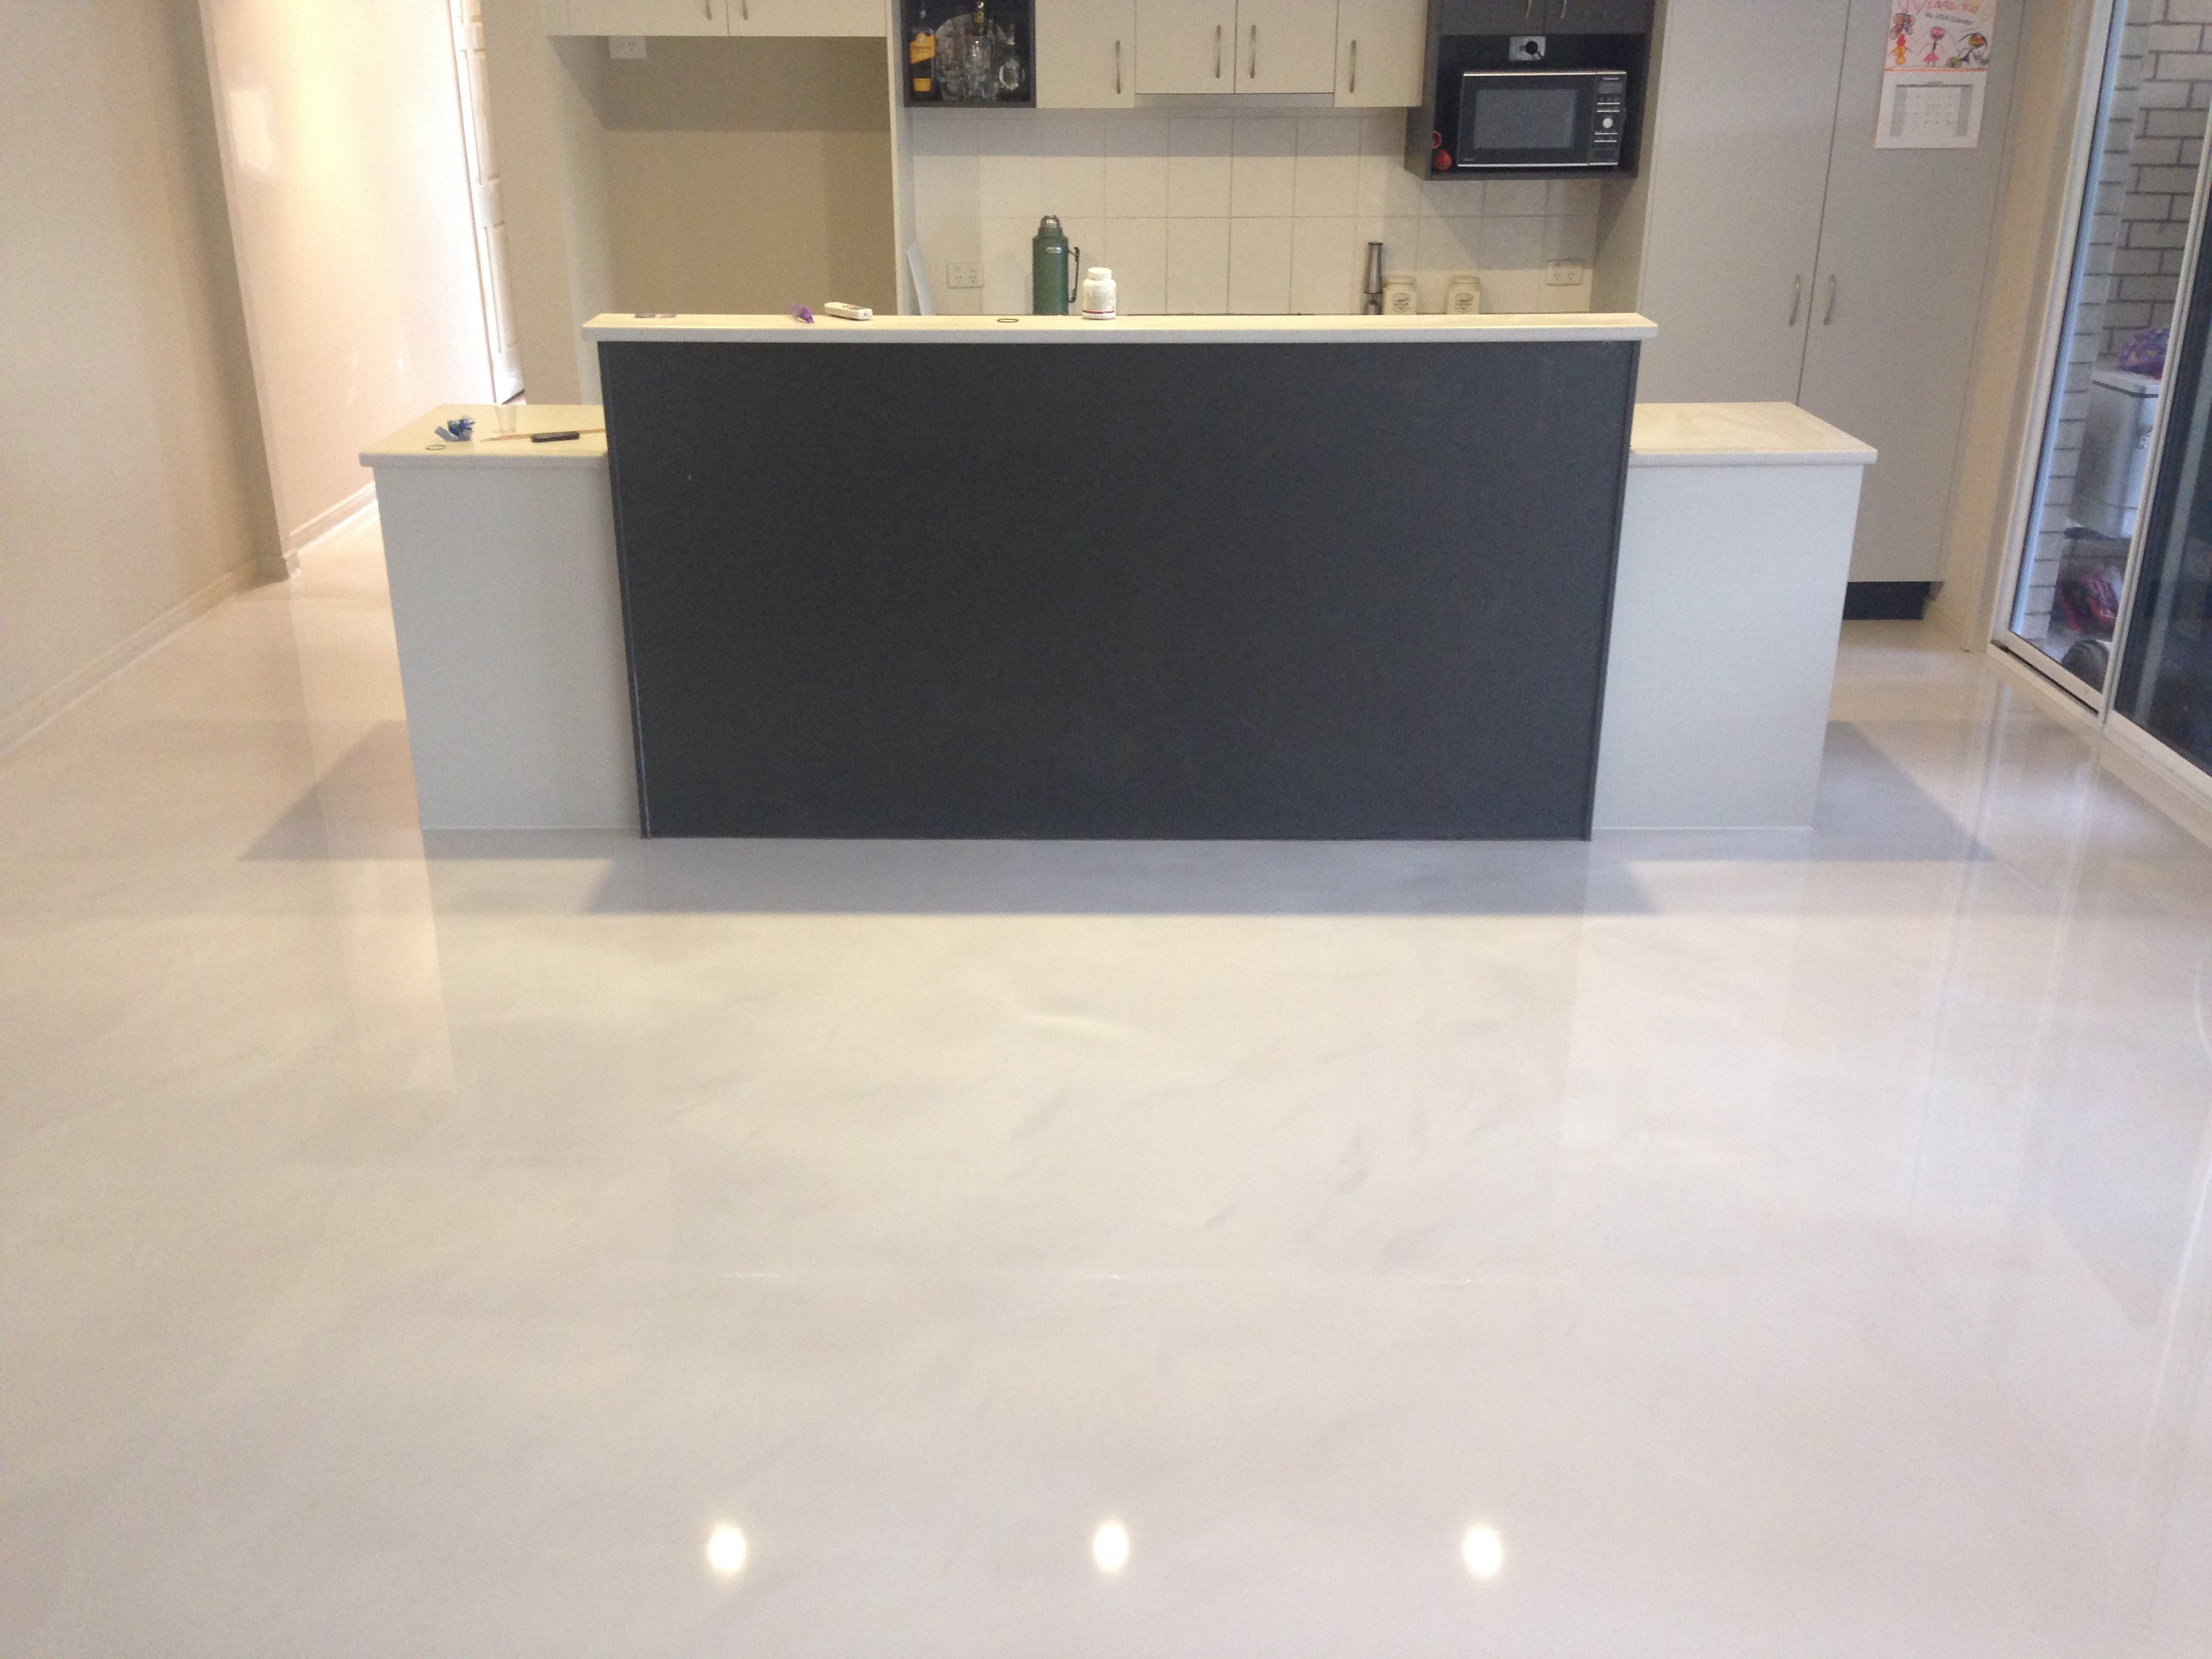 Wonderful Epoxy School   Epoxy Flooring Examples   Decorative Resin Flooring In  Residential Kitchens